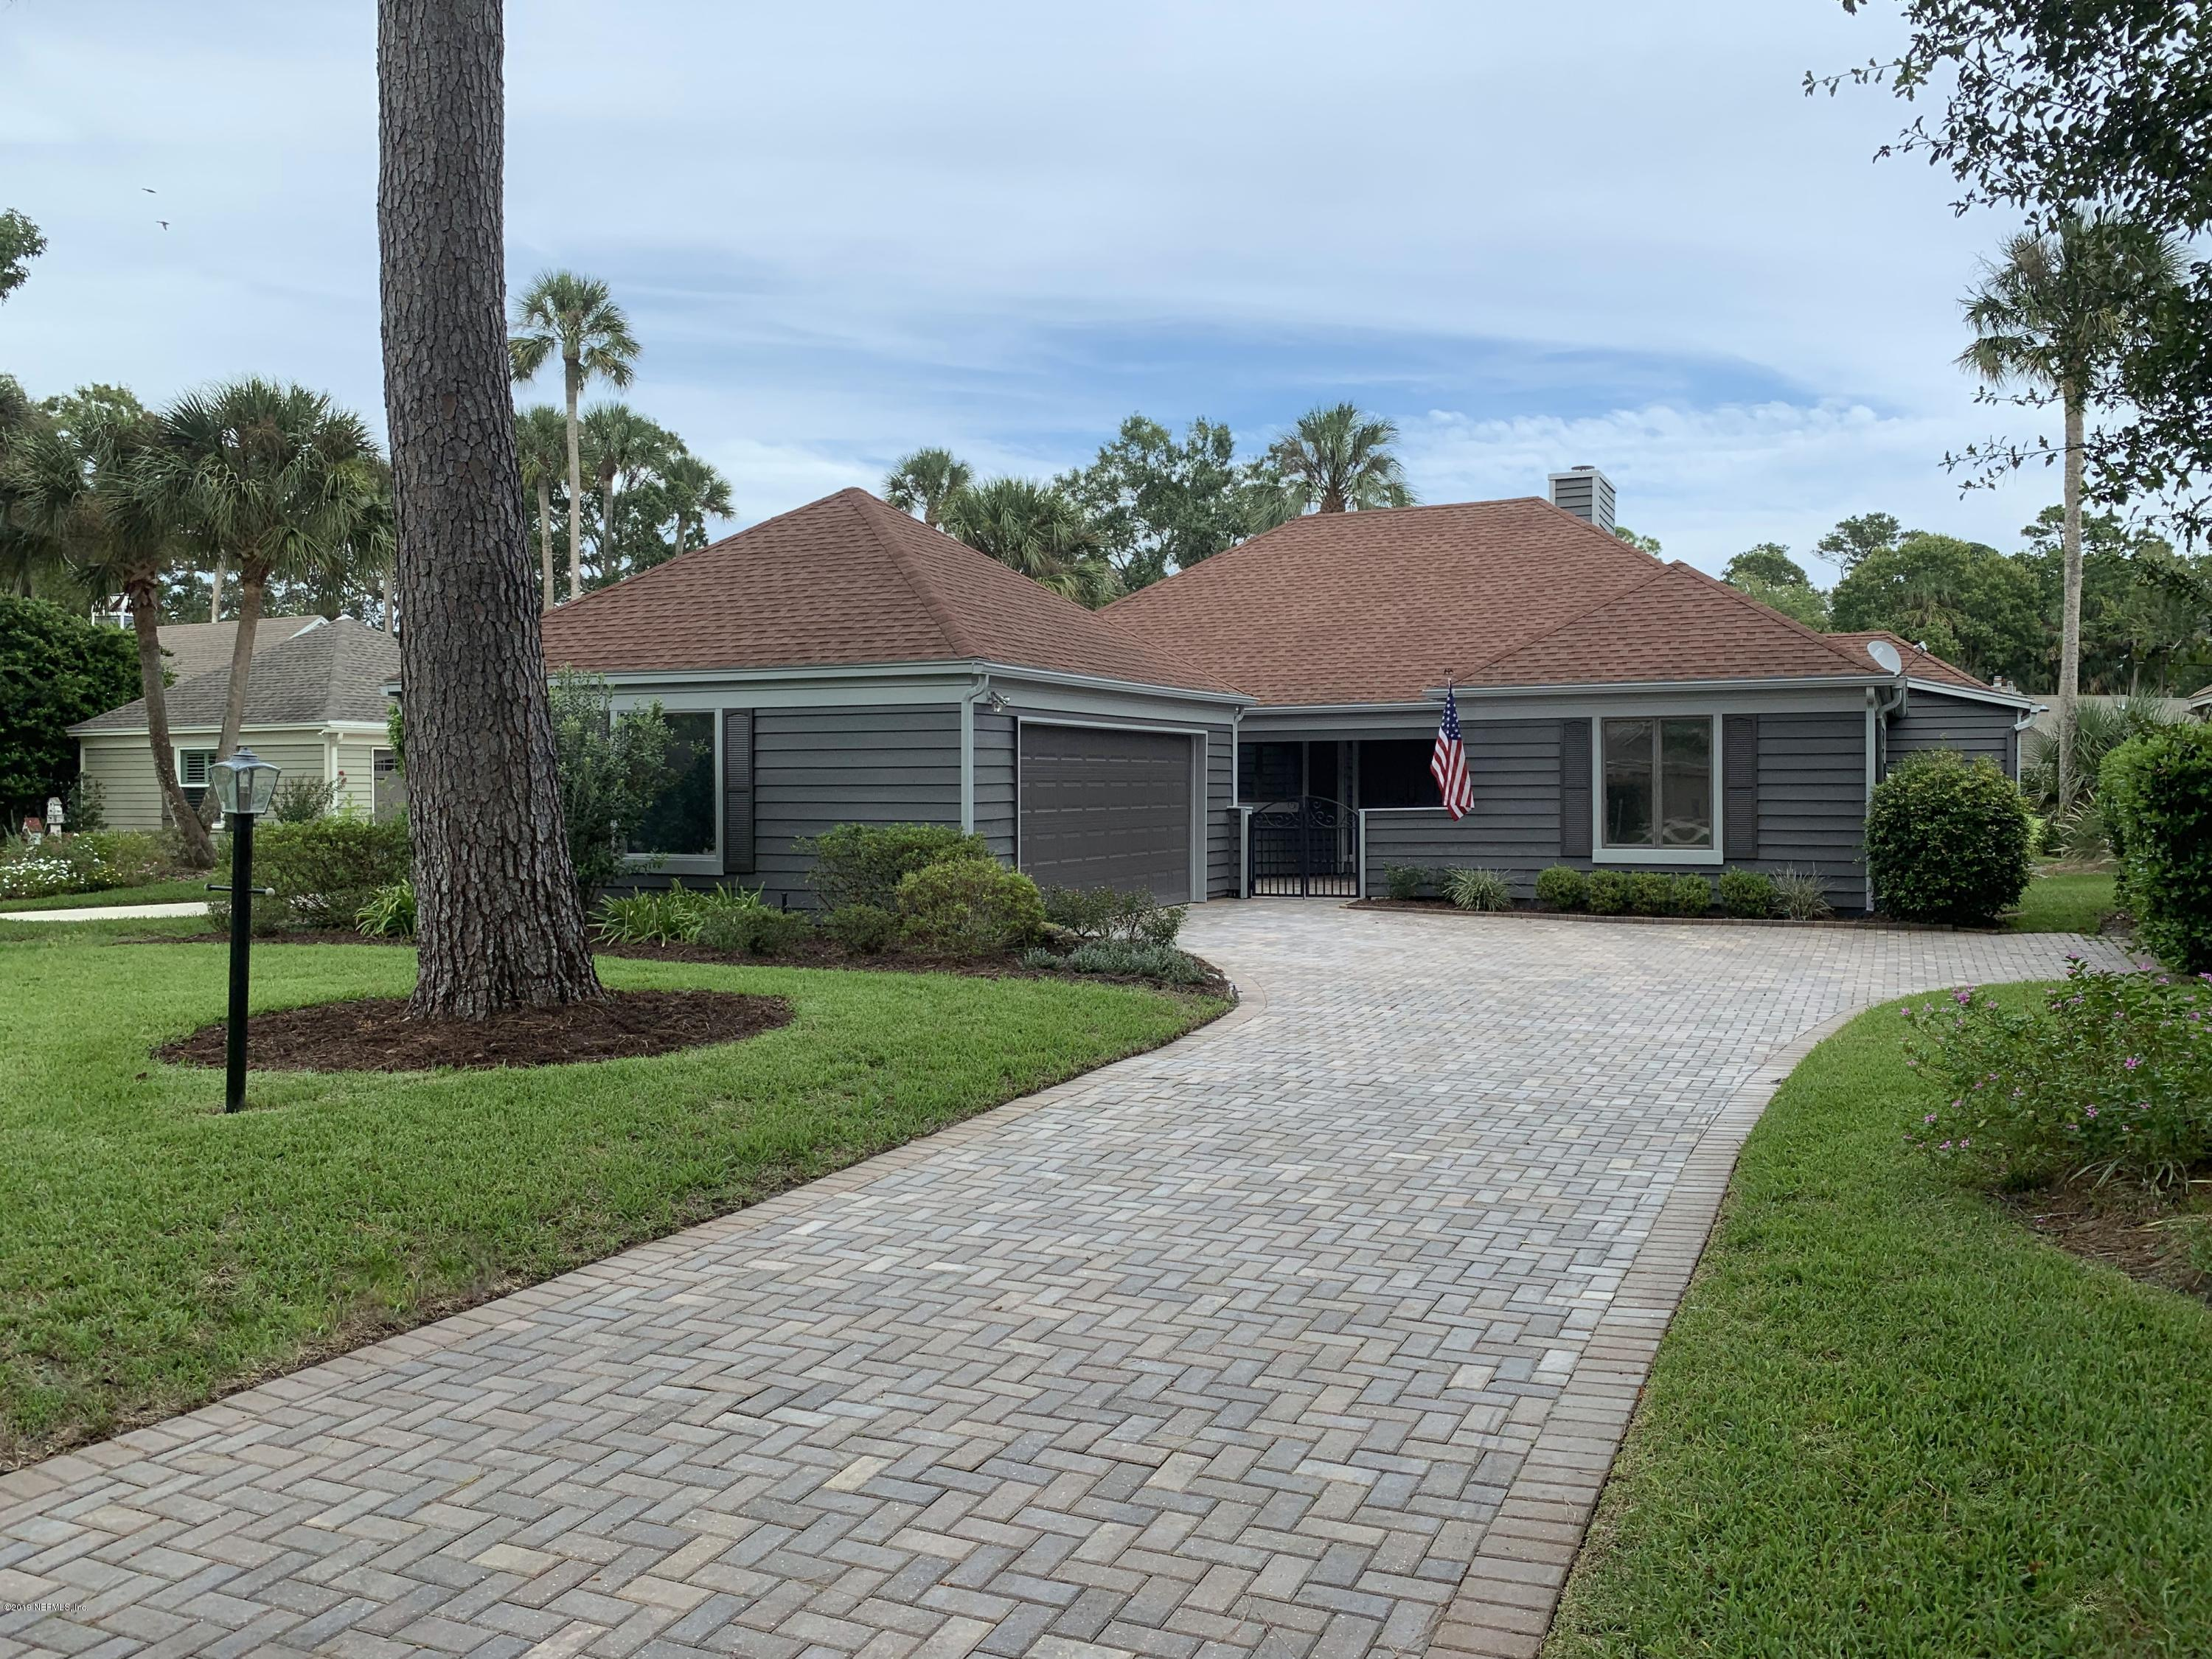 2014 PALMETTO POINT, PONTE VEDRA BEACH, FLORIDA 32082, 3 Bedrooms Bedrooms, ,2 BathroomsBathrooms,Residential - single family,For sale,PALMETTO POINT,1018004